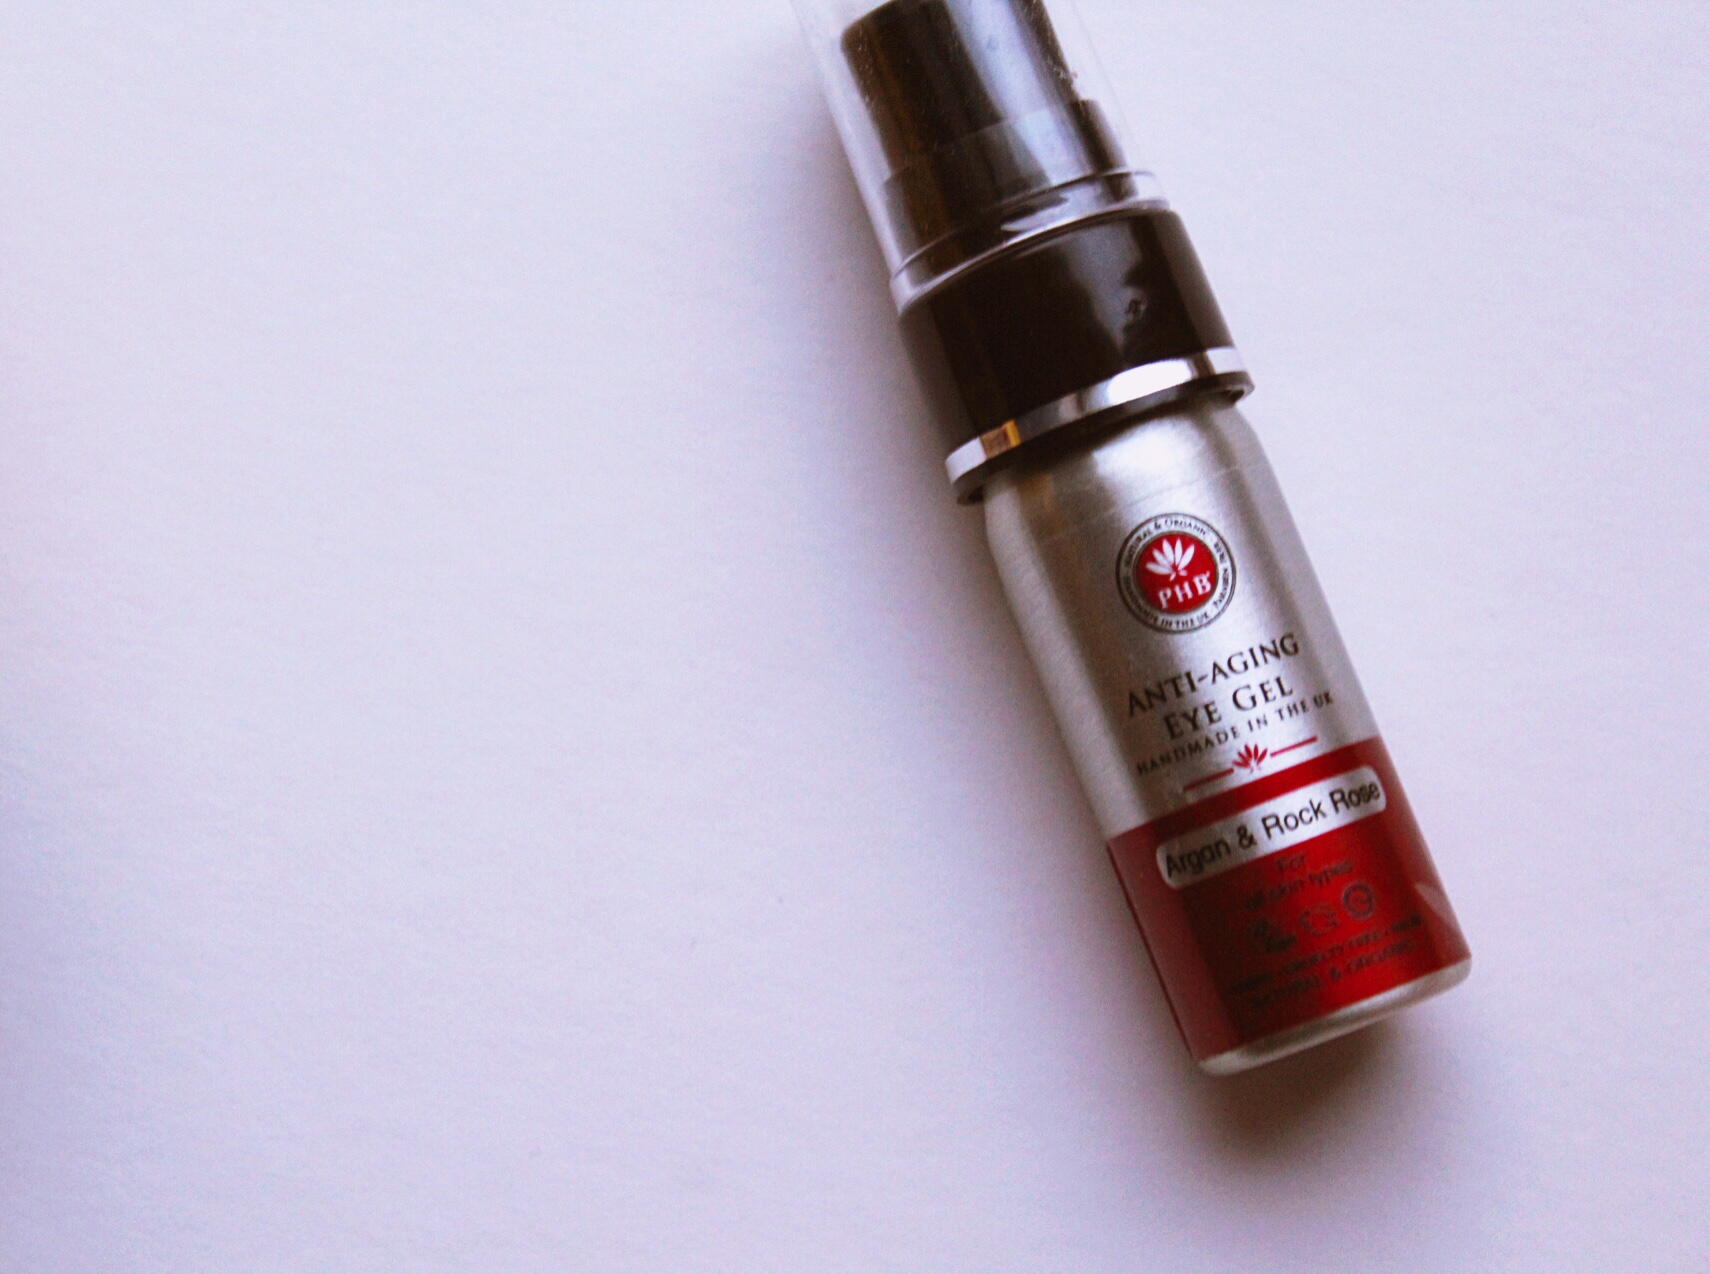 PHB Anti-Aging Eye Gel